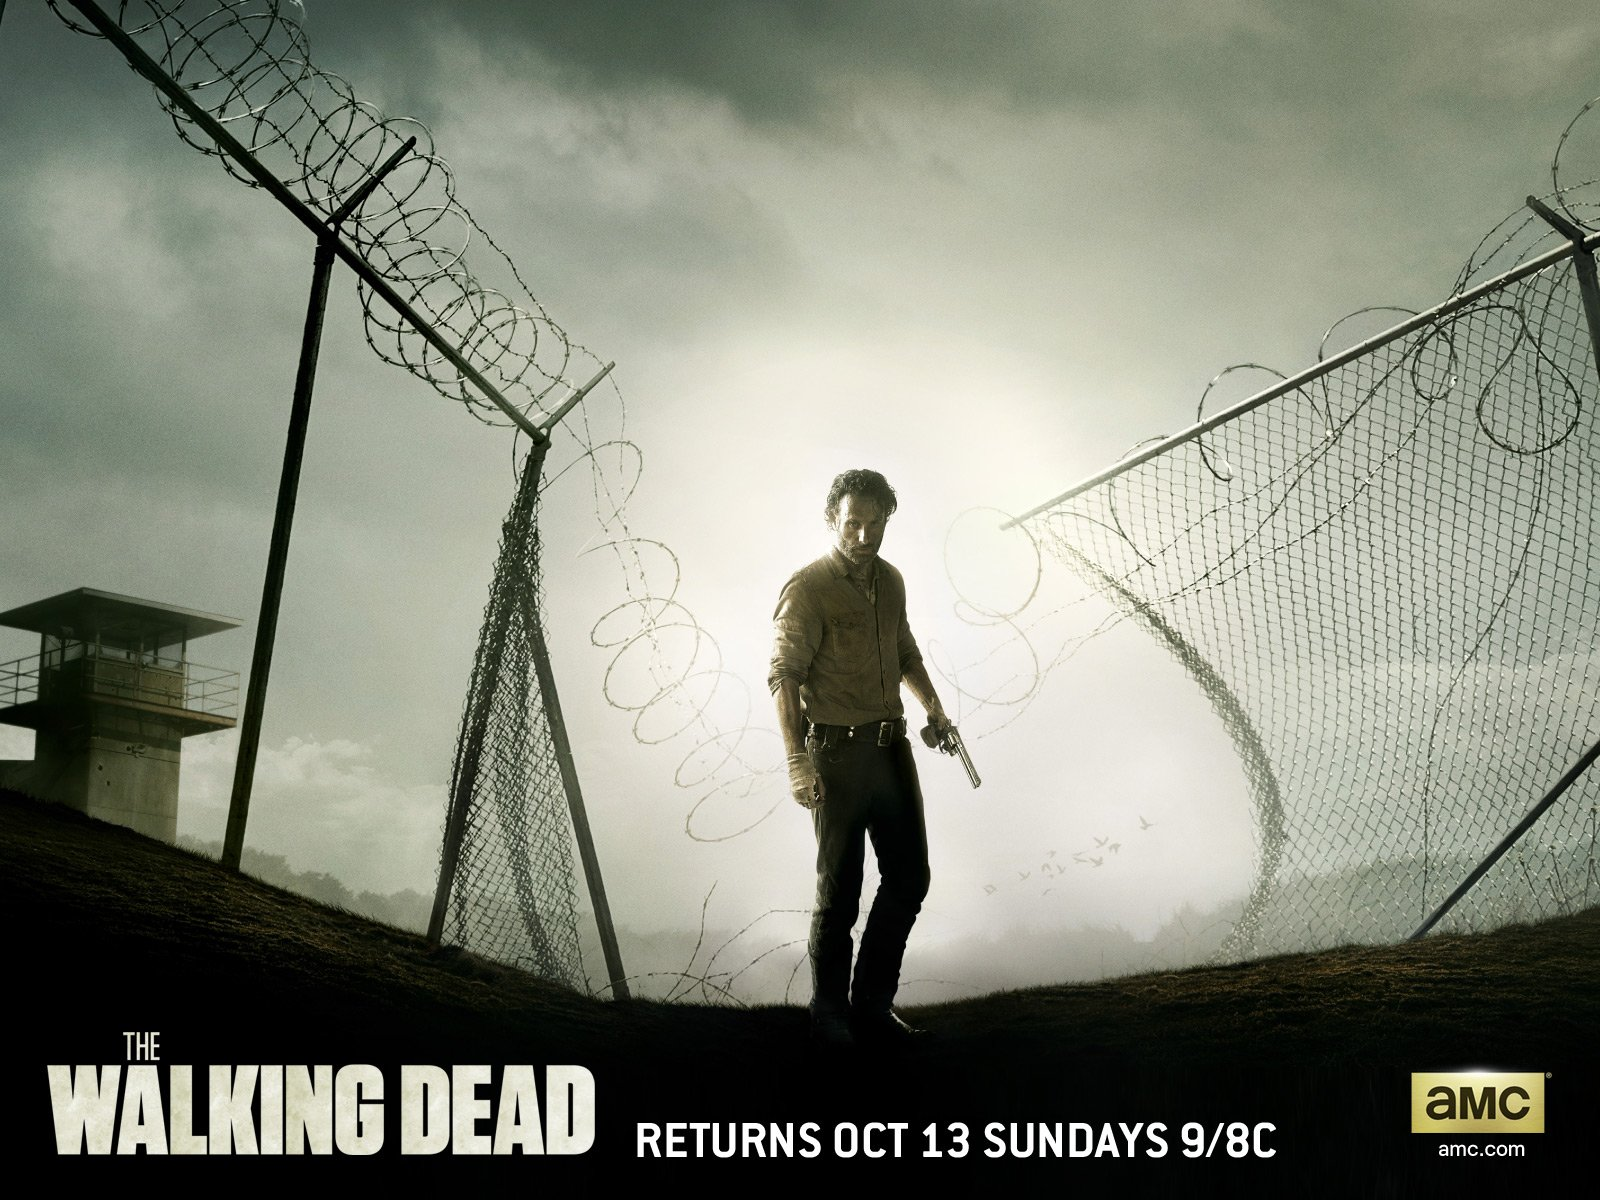 The Walking Dead season 4 wallpapers released - Movie Wallpapers